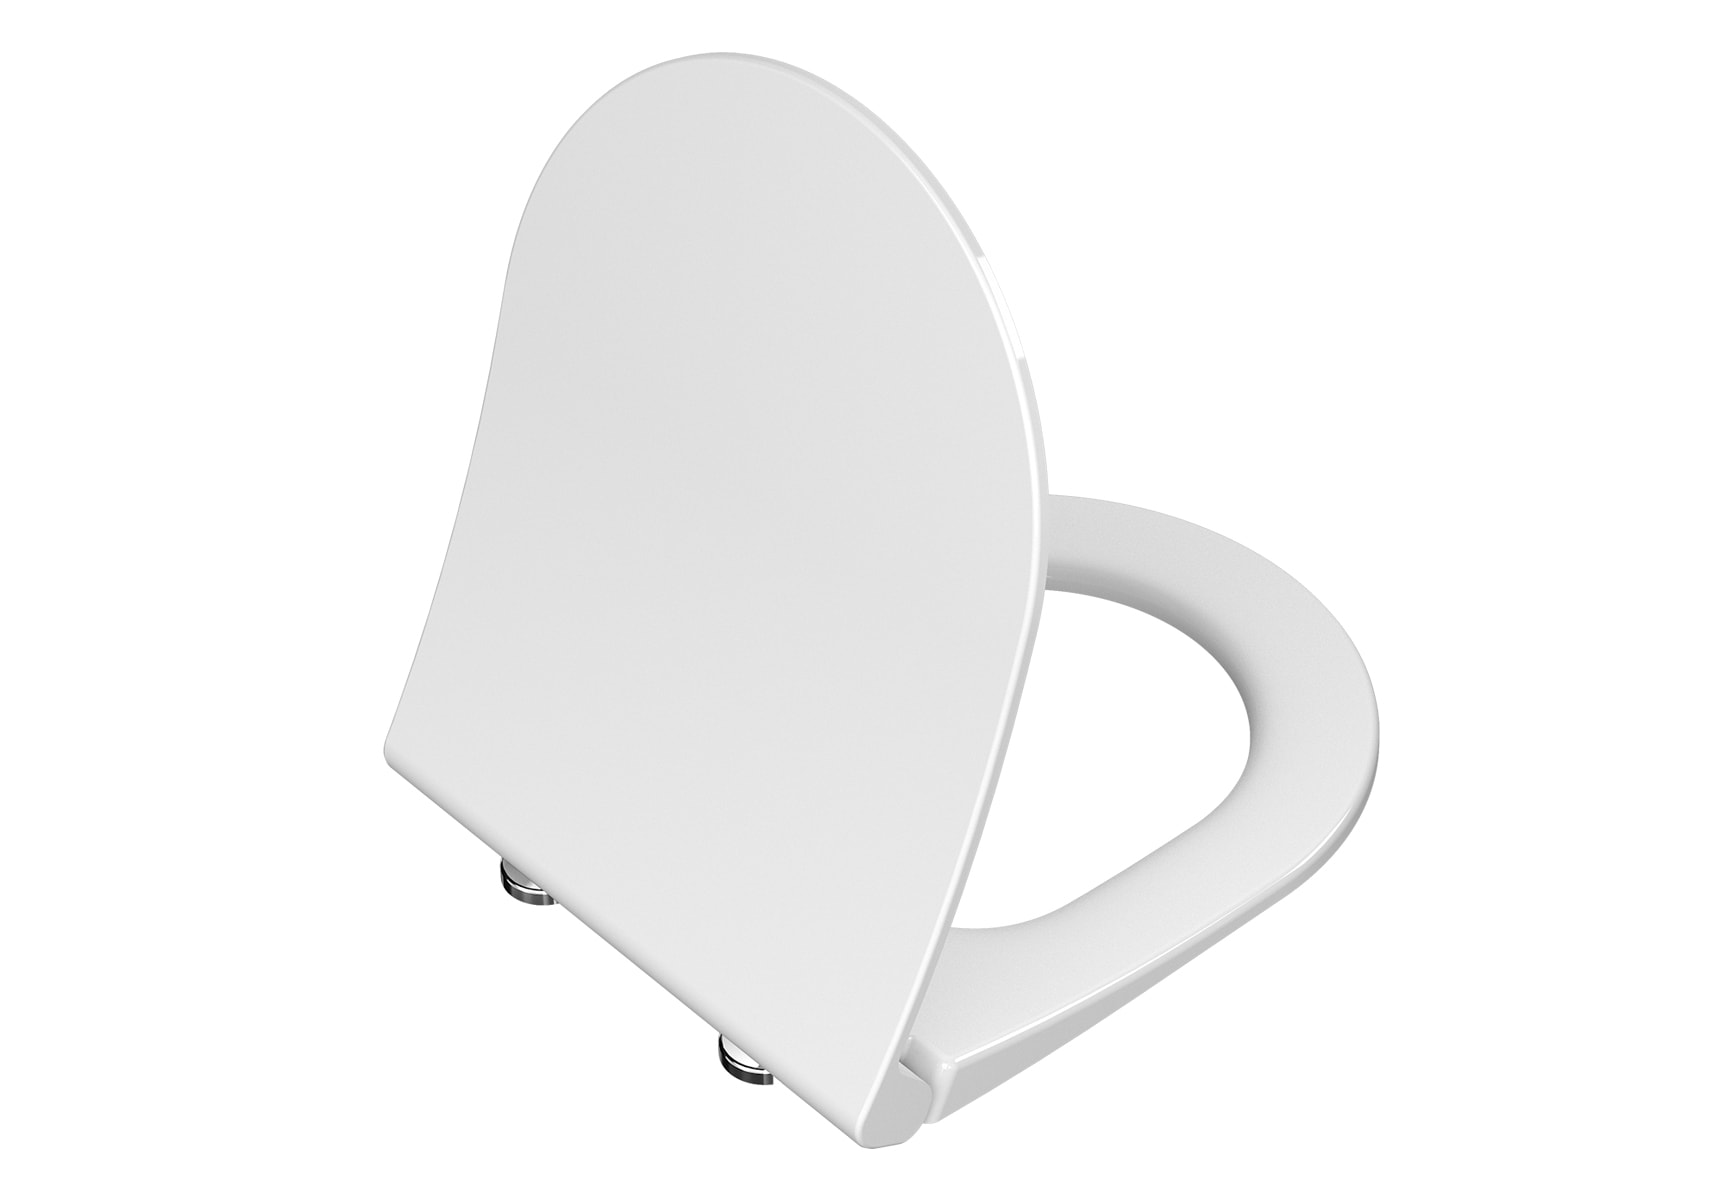 Universal Slim Wc Seat Model 2 – Round Form (Duroplast, Soft-Closing, Detachable Metal Hinge, Top Fixing)